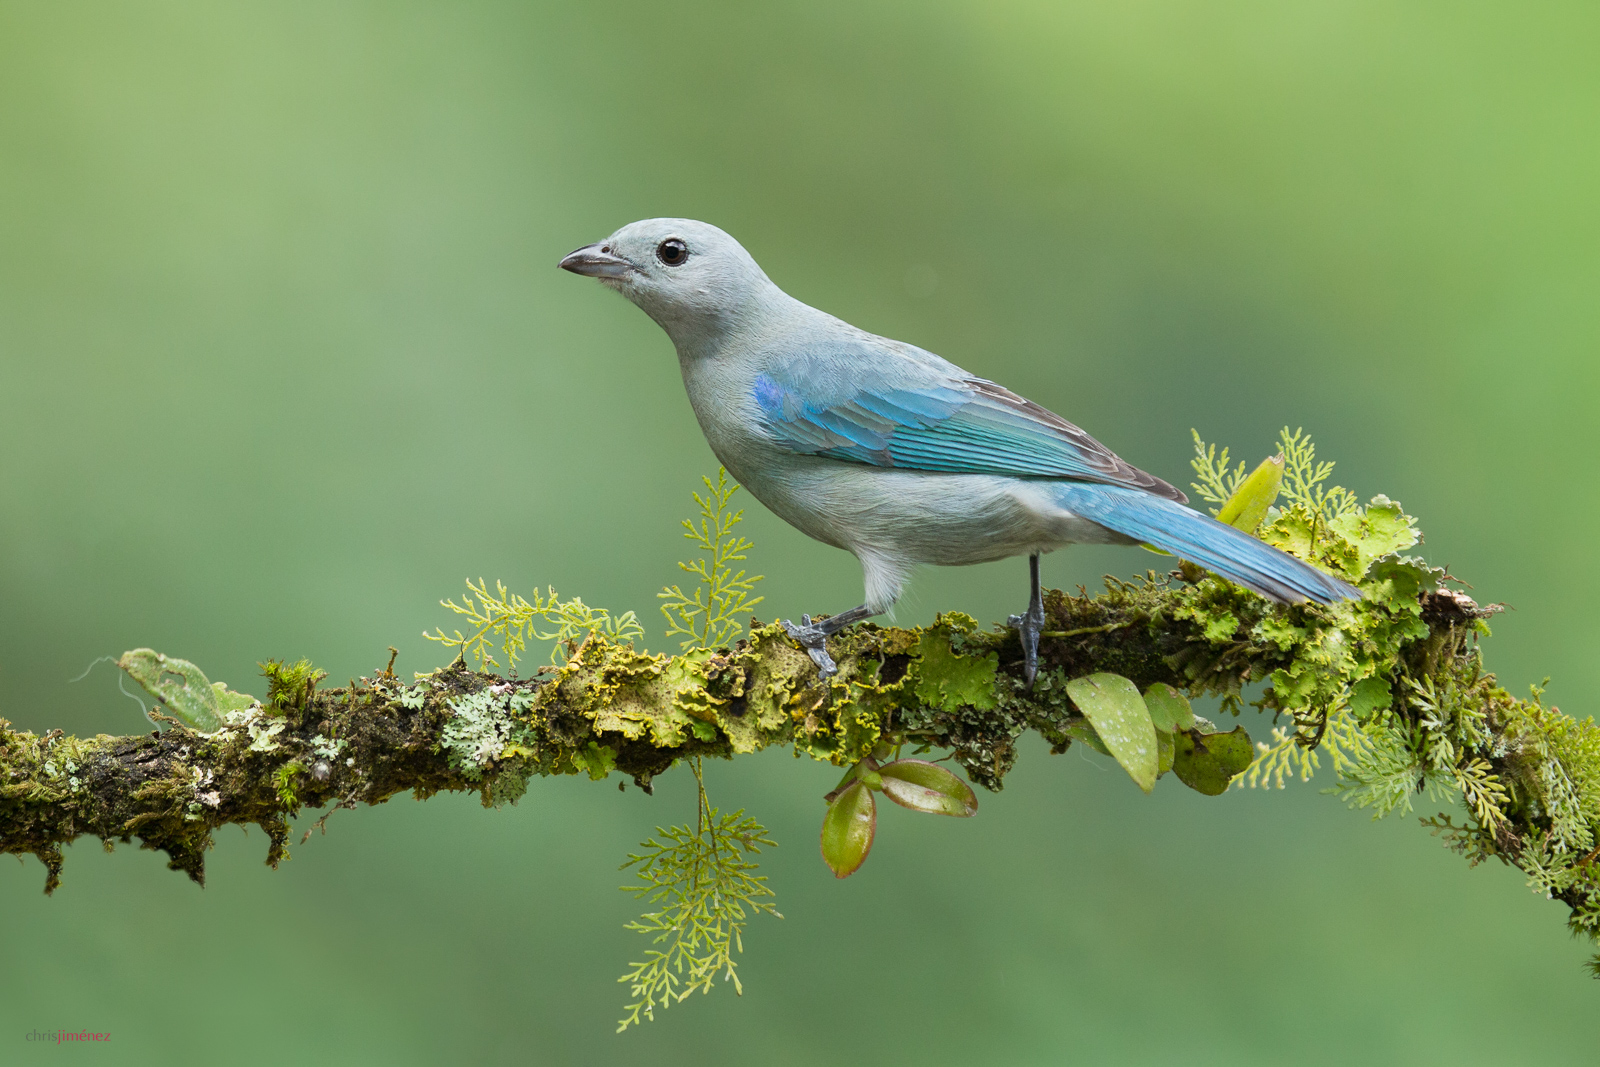 Blue-gray Tanager (Thraupis episcopus) perched on a branch at San Jose, Costa Rica